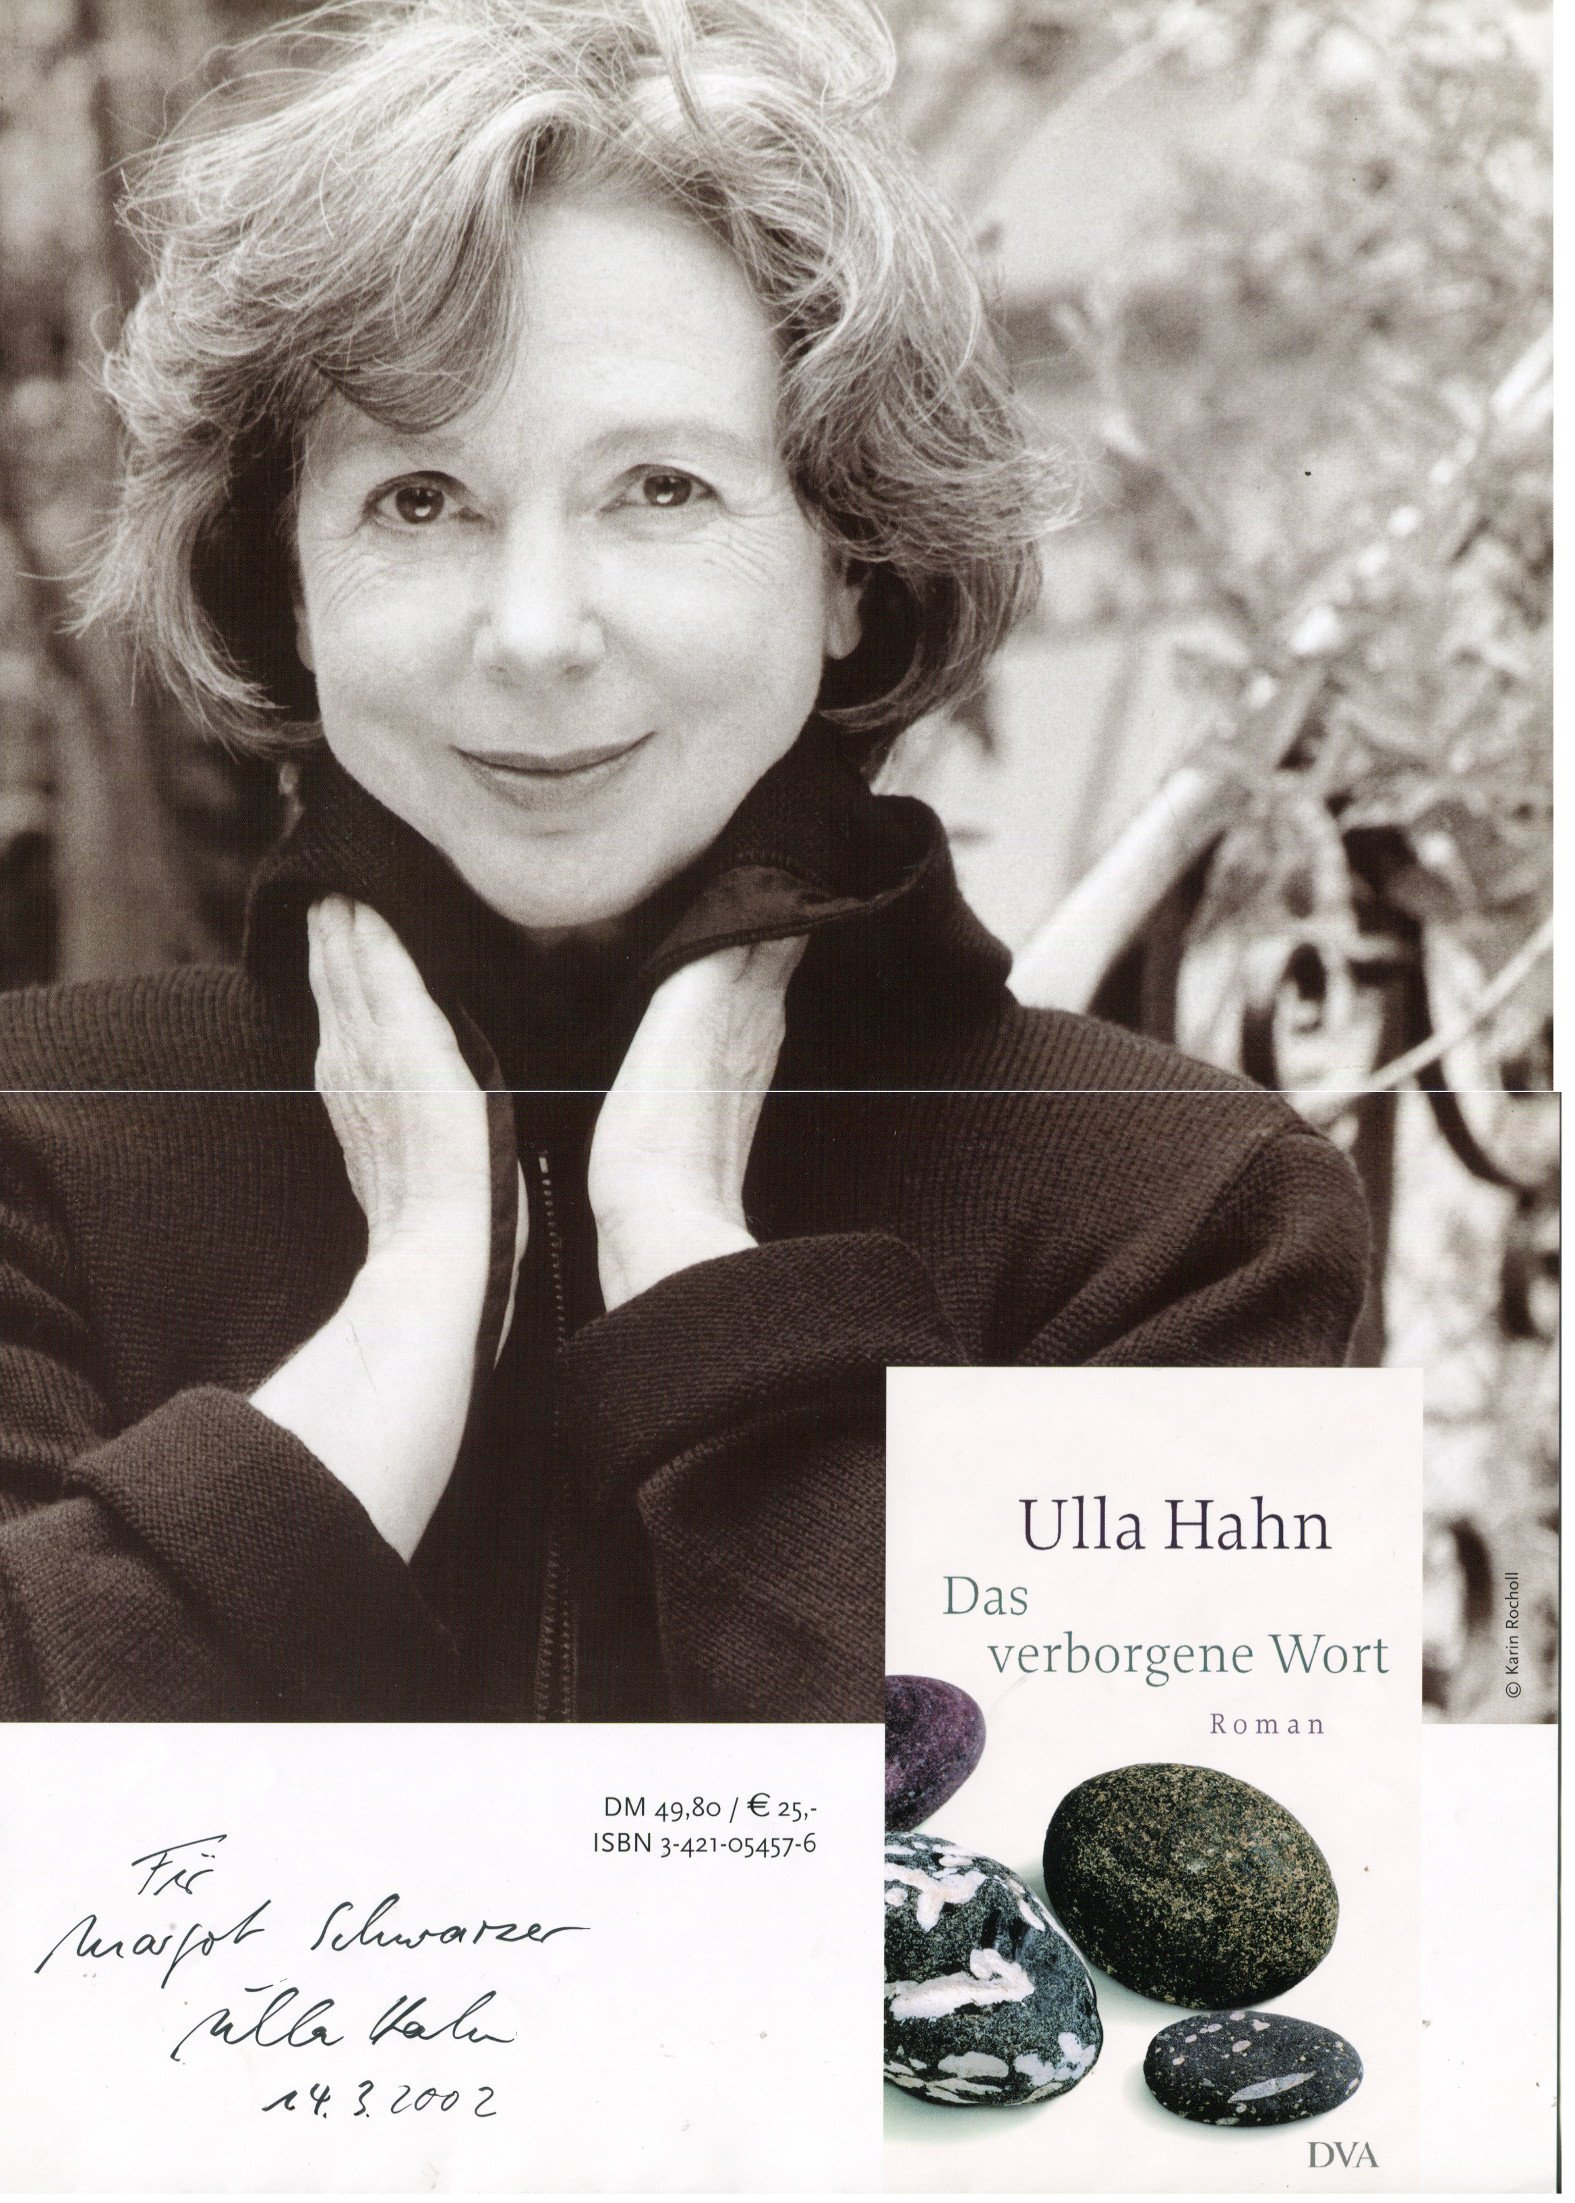 Ulla Hahn autograph, German poet and novelist, signed poster